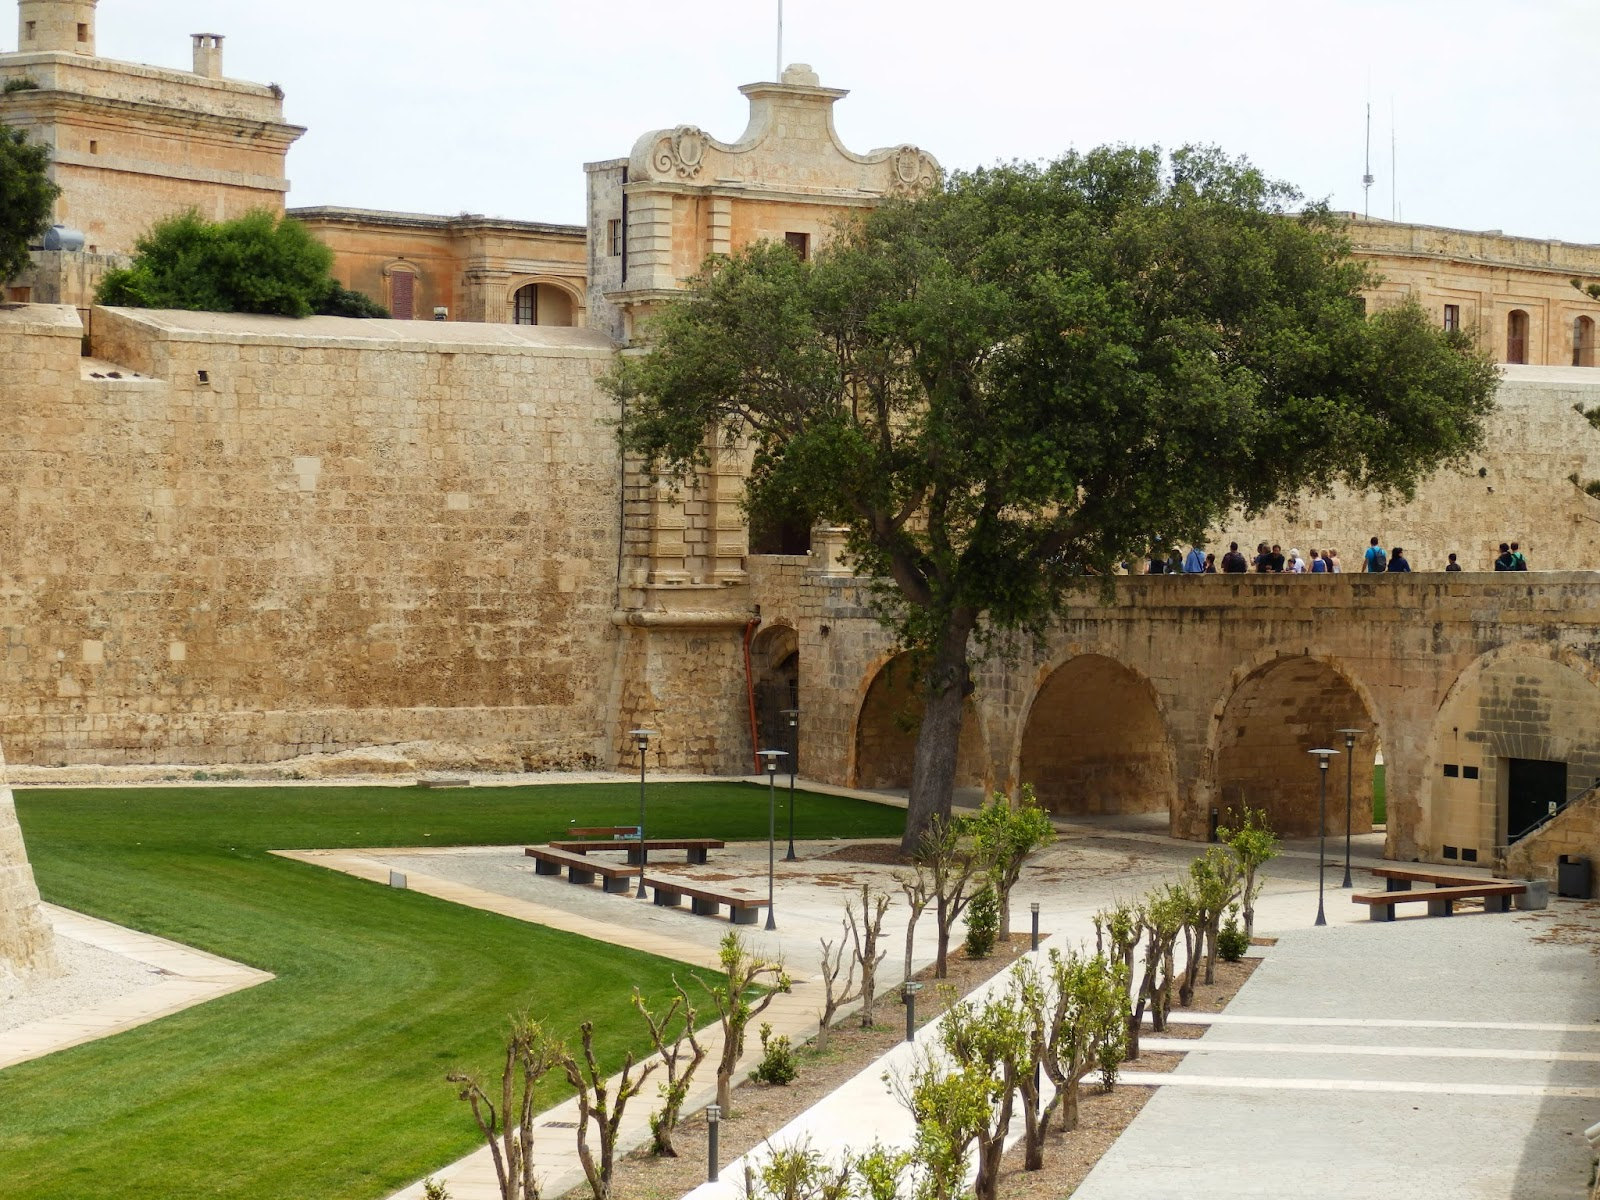 Entrance to Mdina, Malta